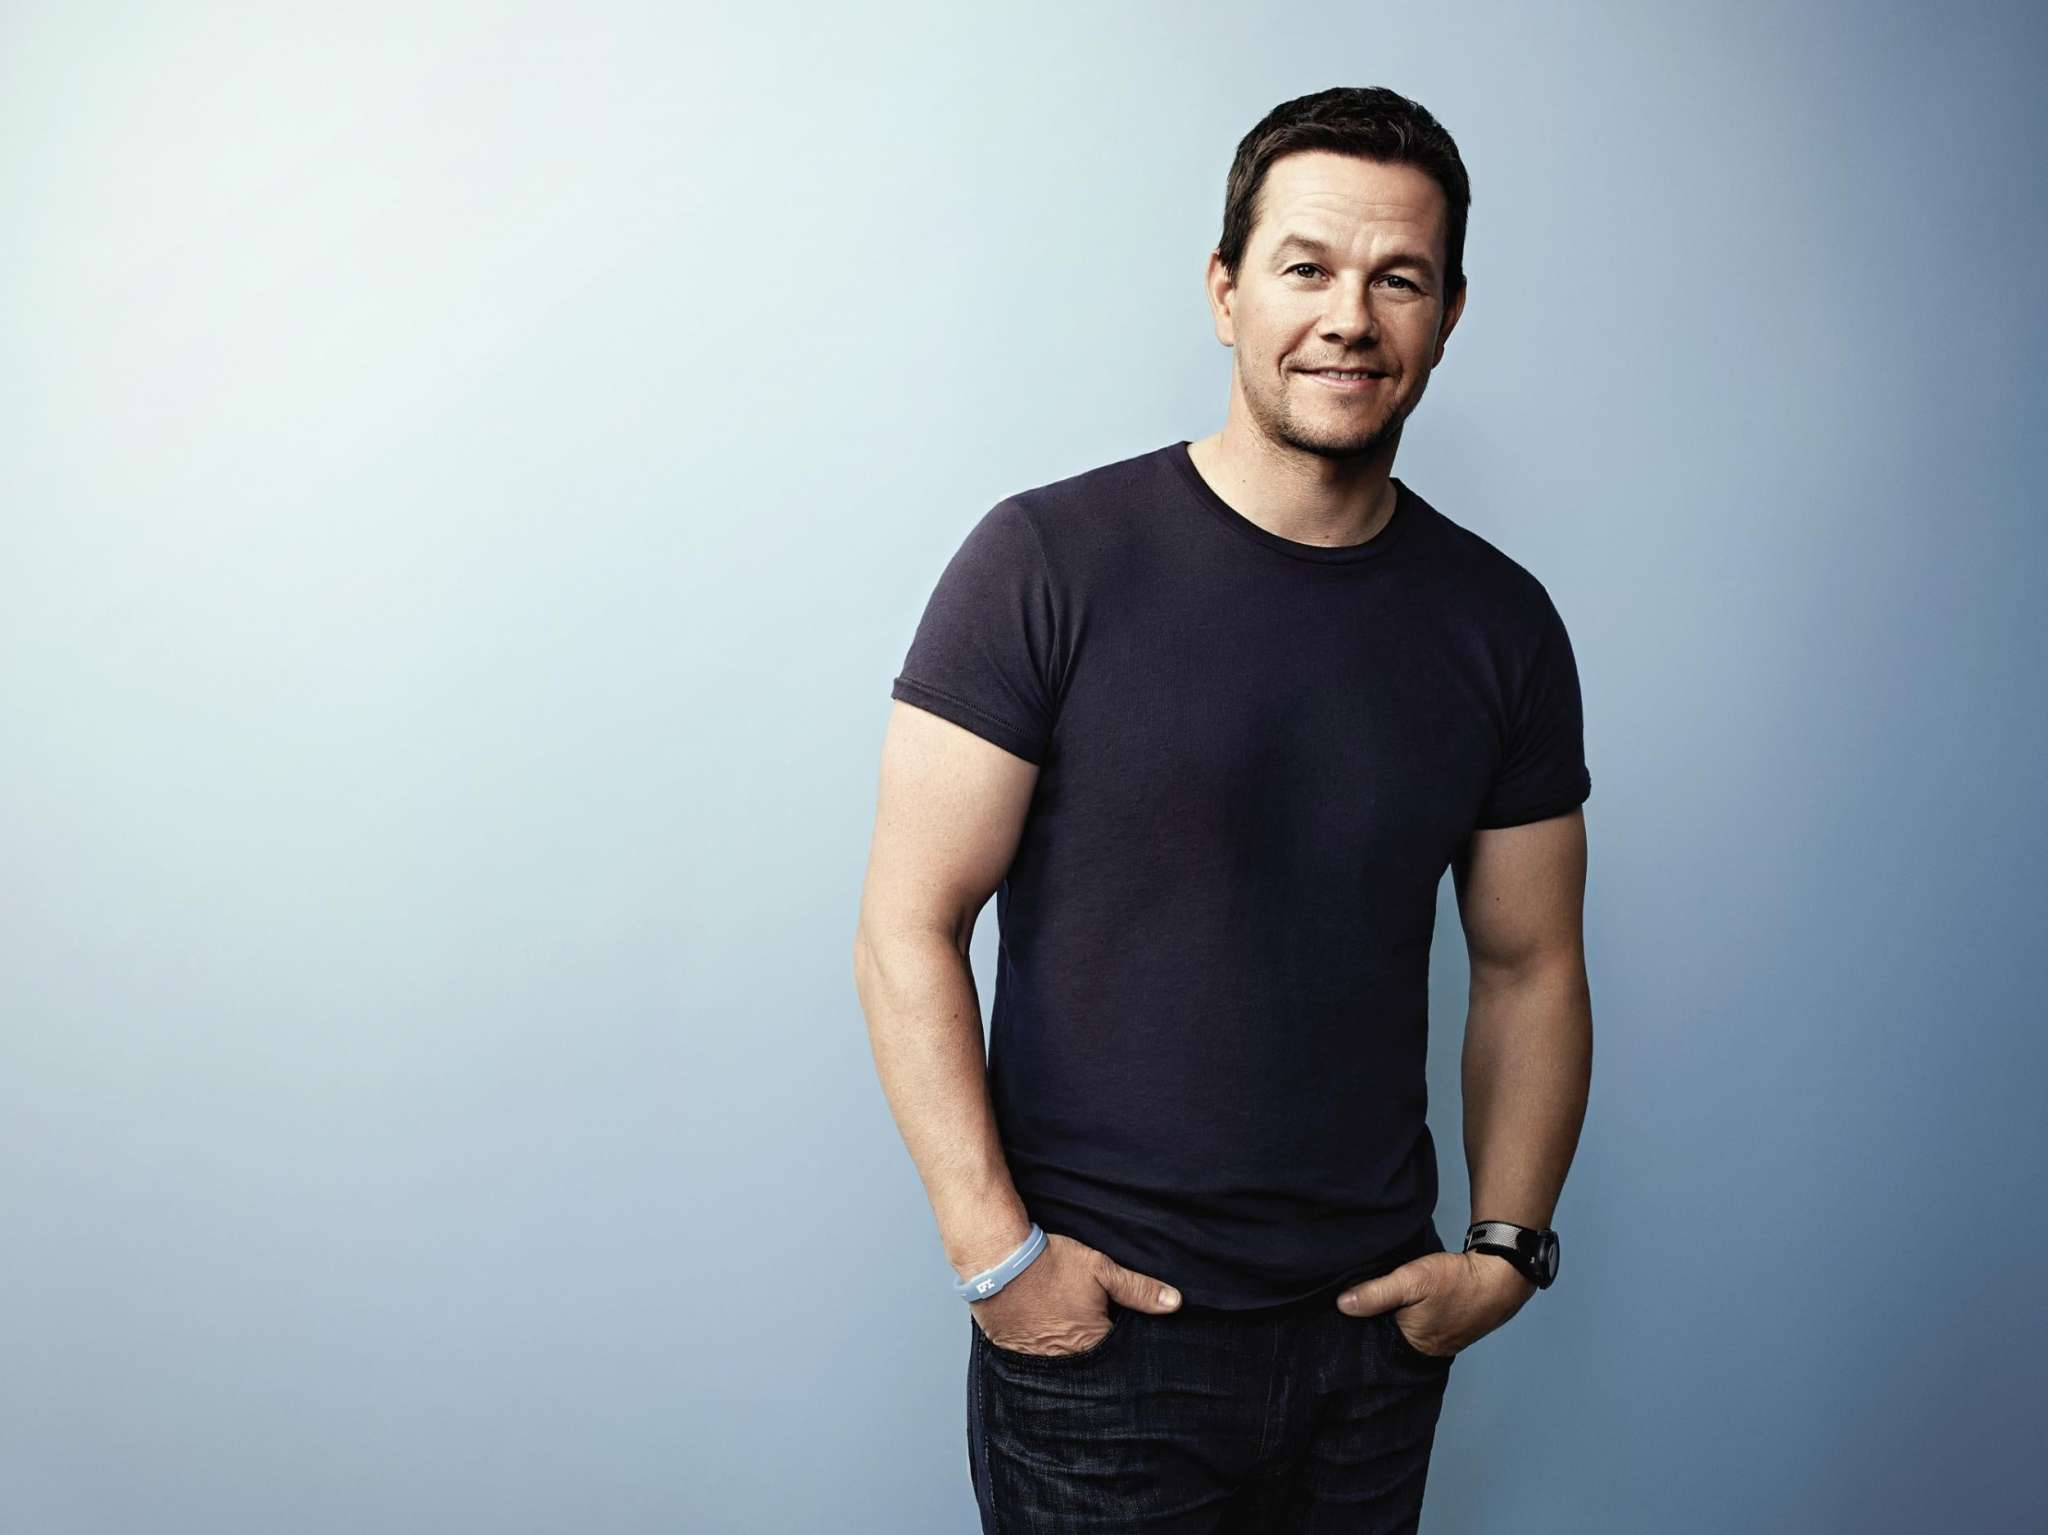 Mark Wahlberg Is Excited For New Role That Requires Him To Gain A Lot Of Weight – Here's How He Plans To Do It!